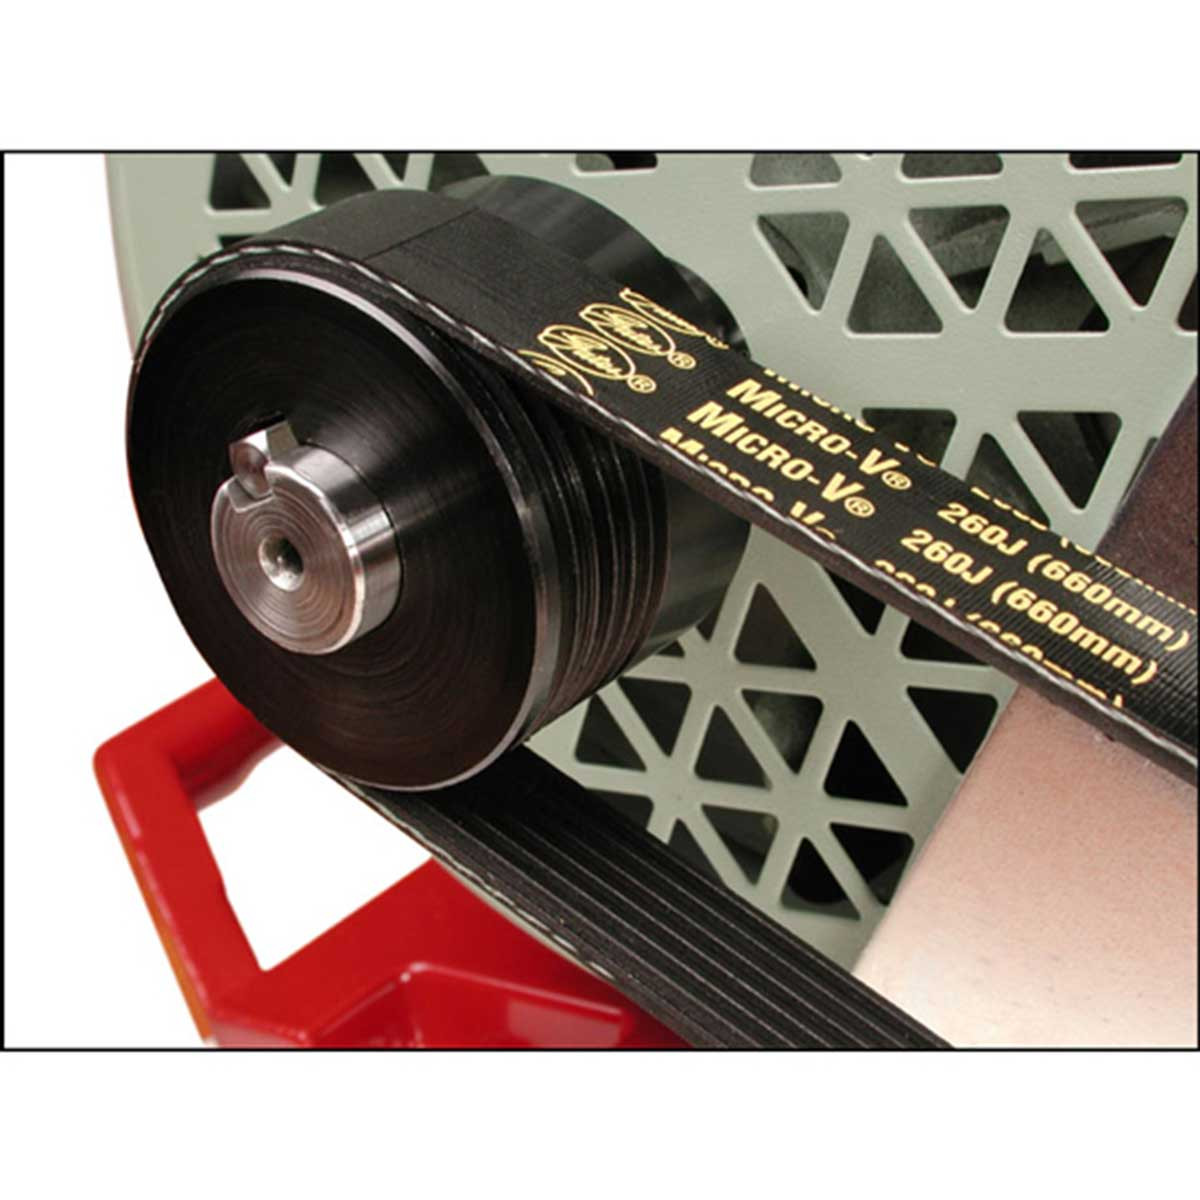 MK pro tile saw ribbed belt